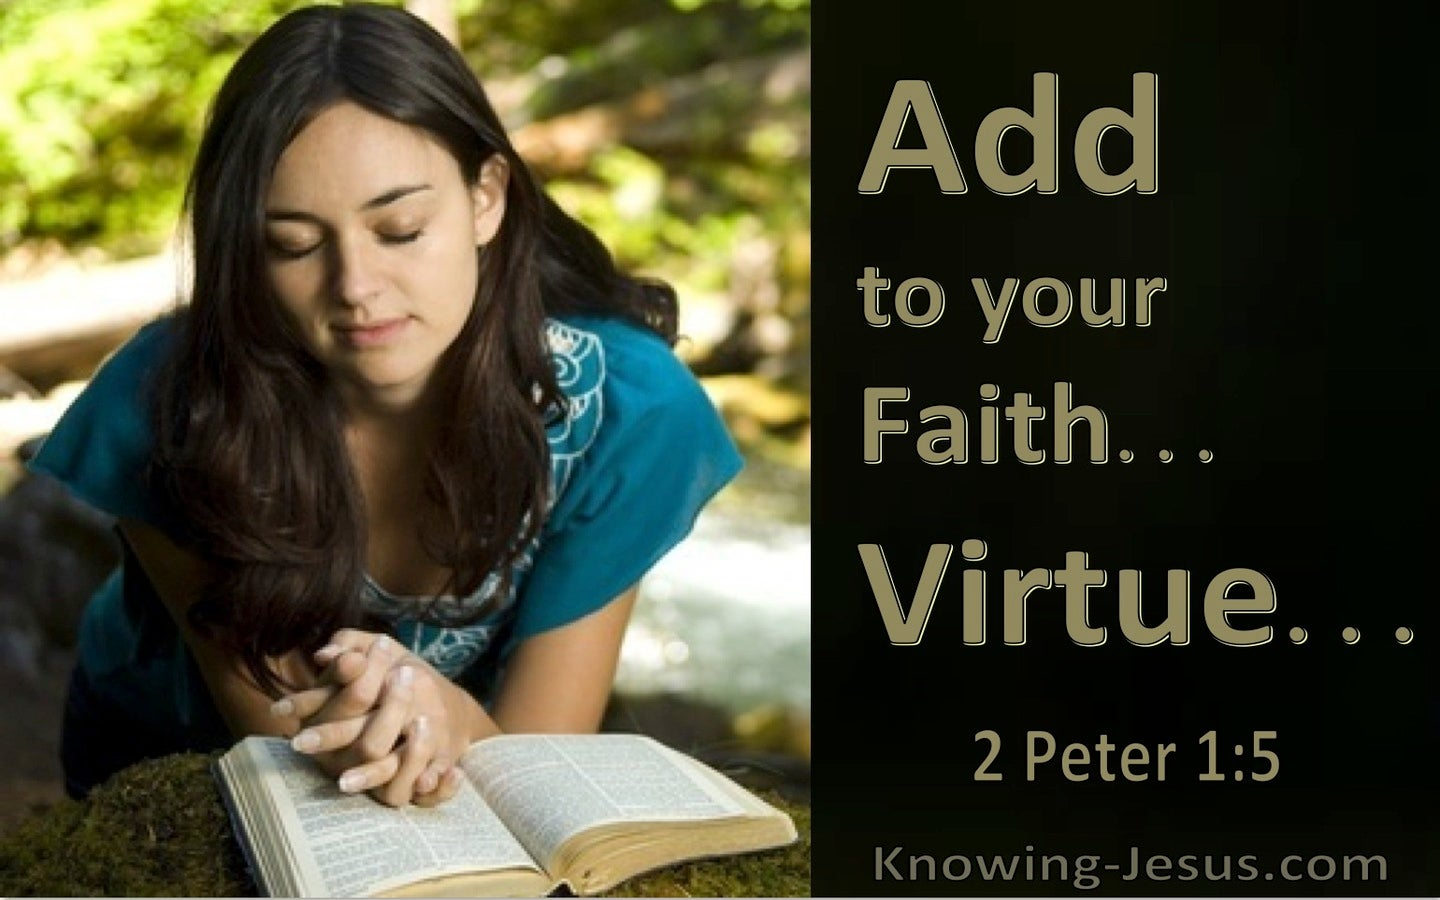 2 Peter 1:5 Add To Your Faith, Virtue (utmost)05:10